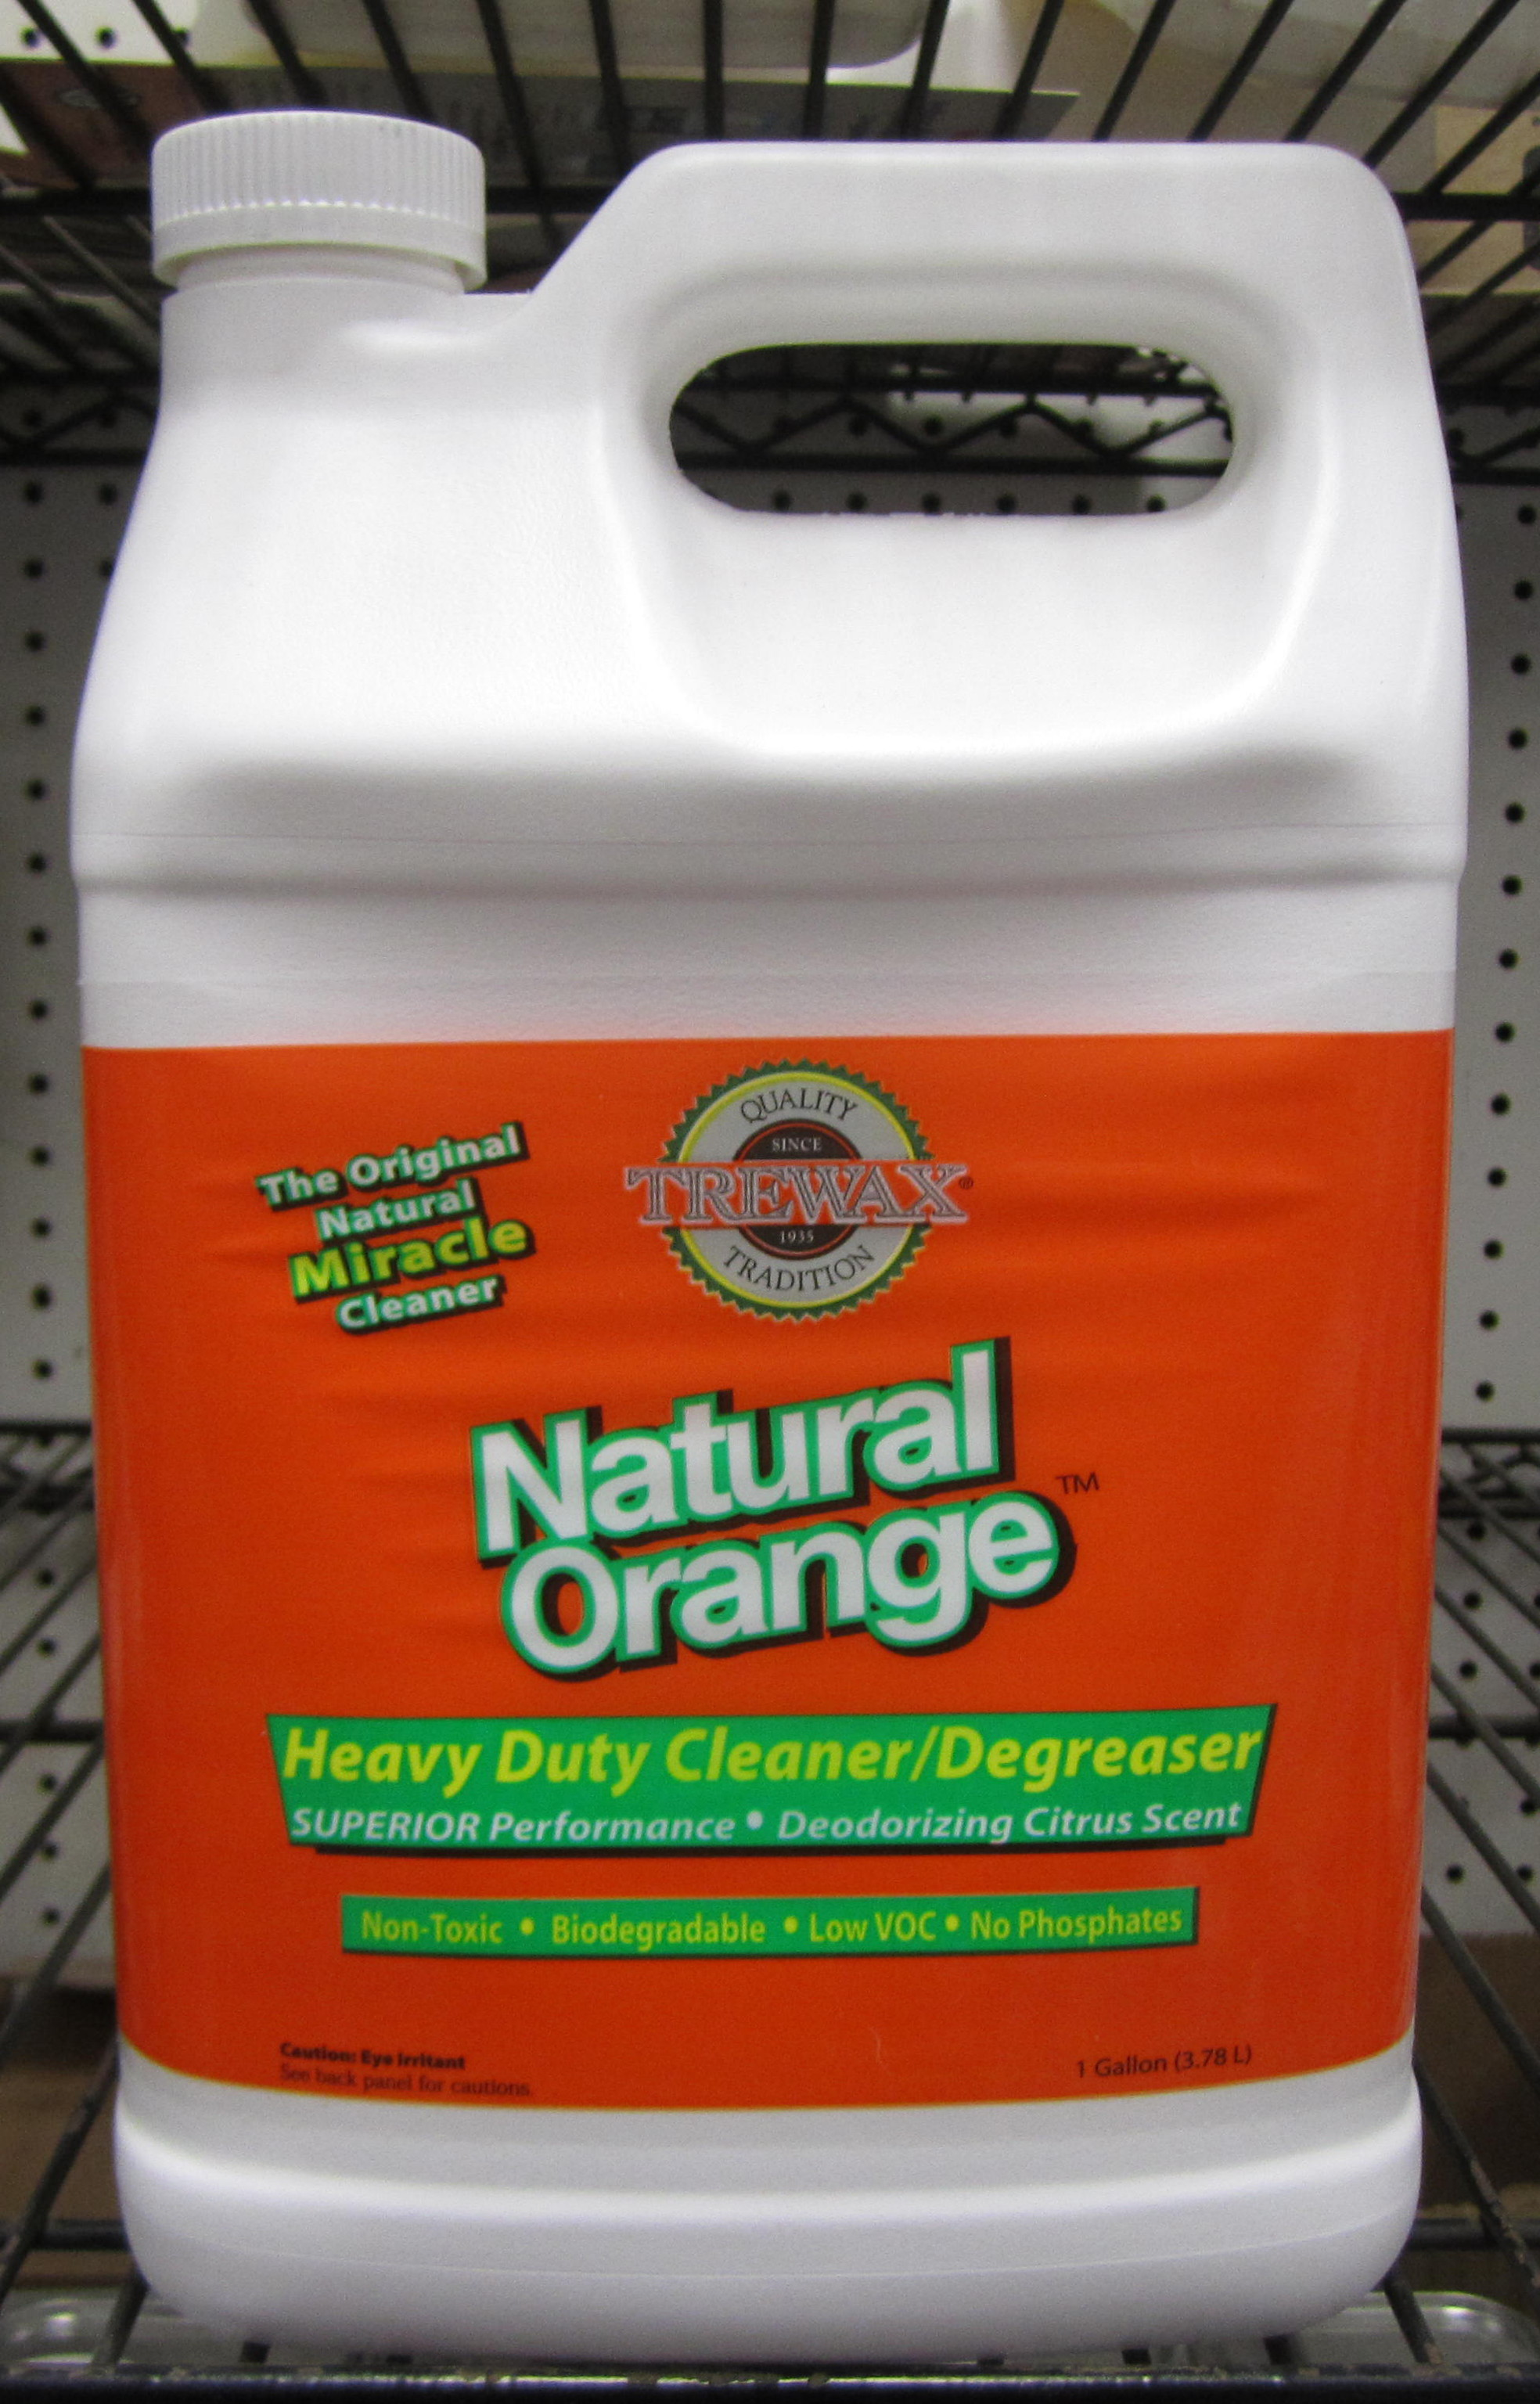 Masonry depot natural orange image proview for Natural concrete cleaner